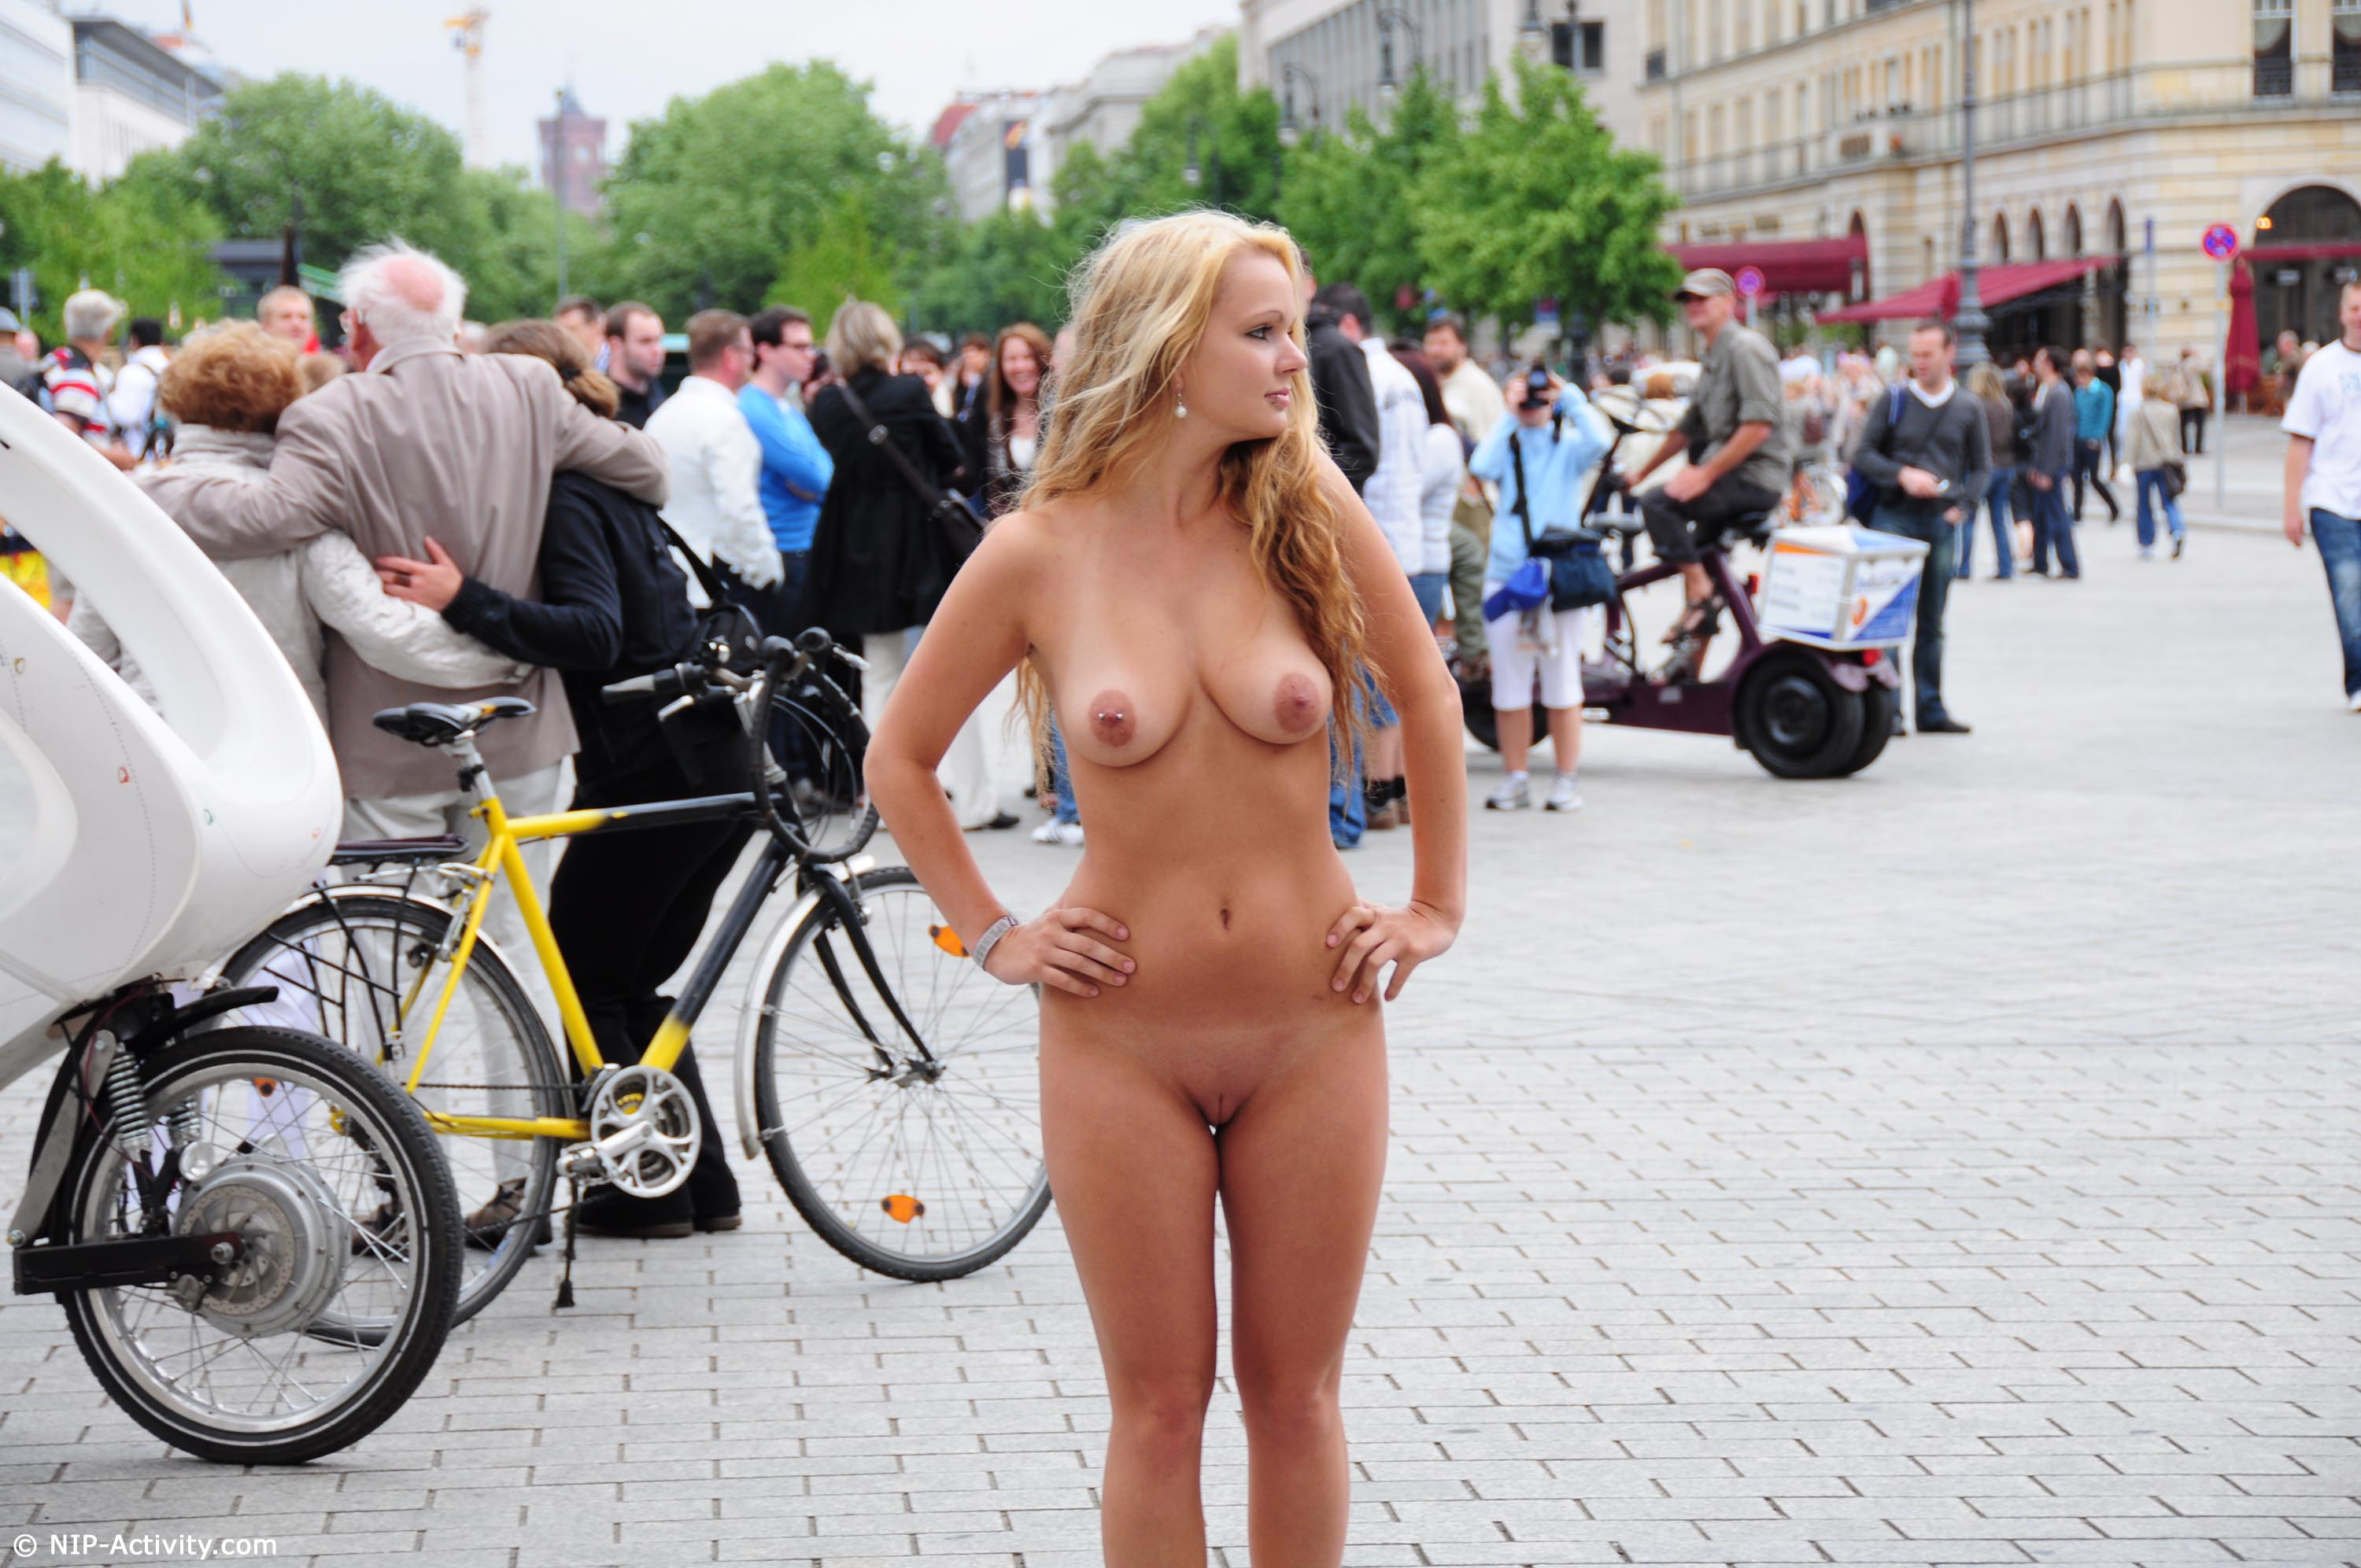 in nude activity public Nip